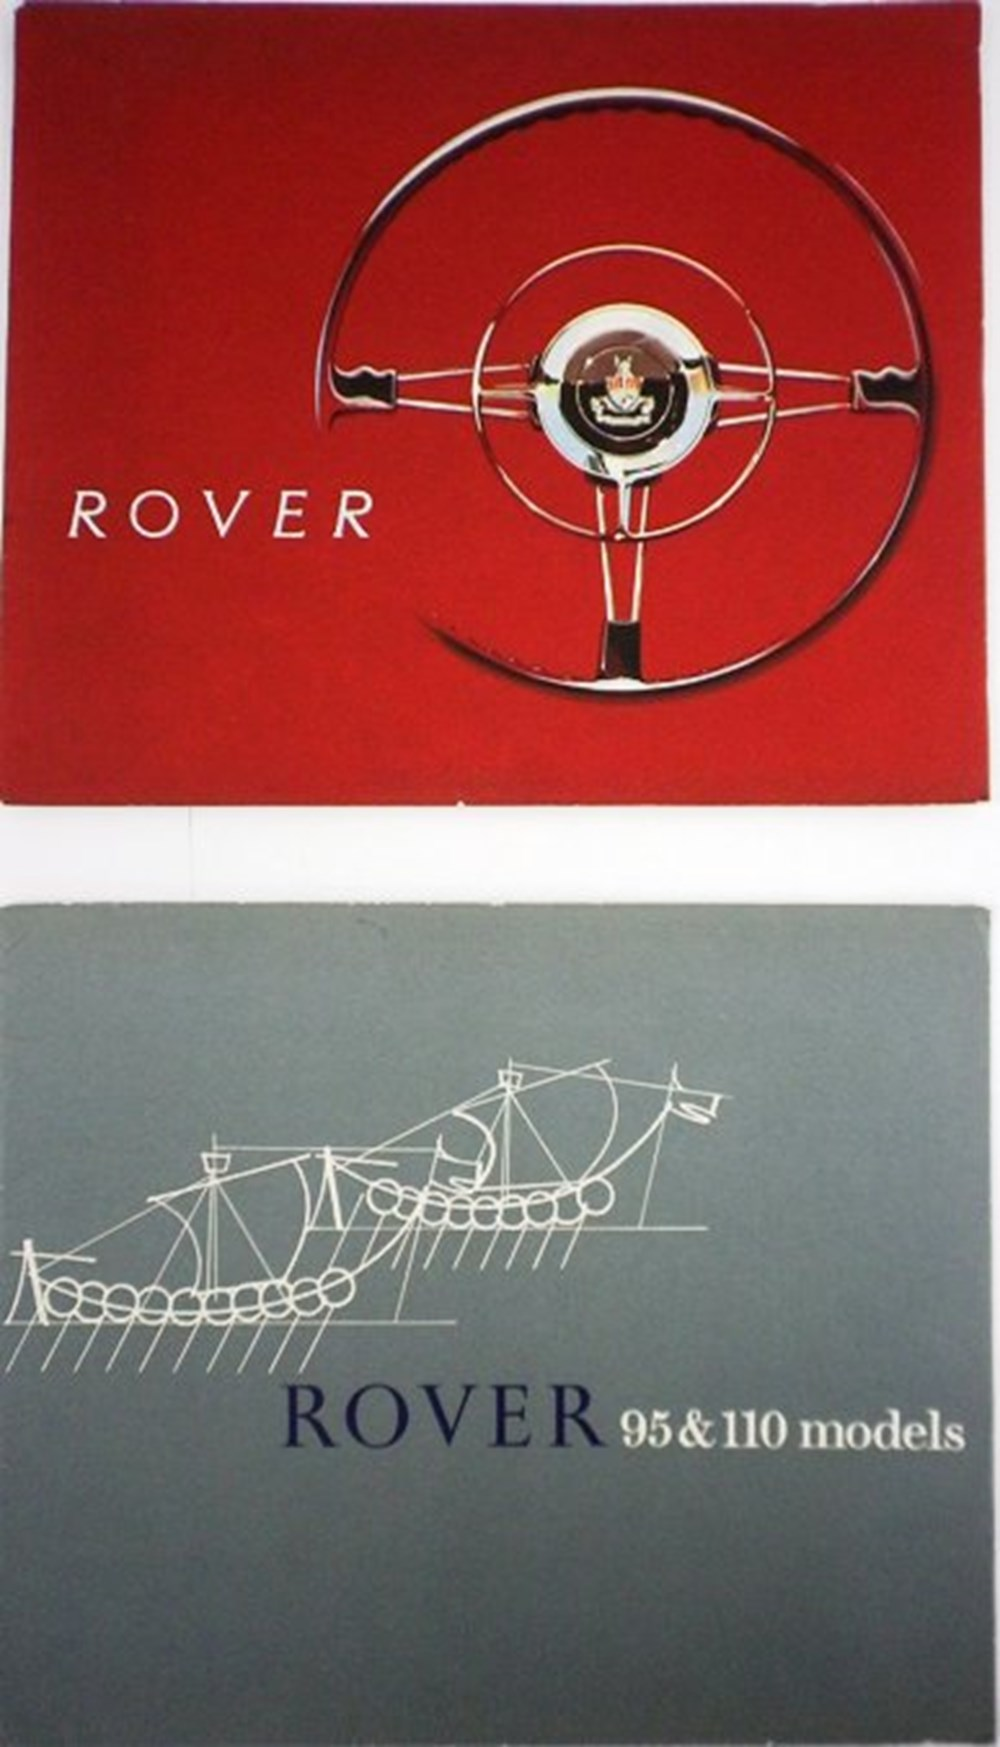 Lot 045 - Rover brochures